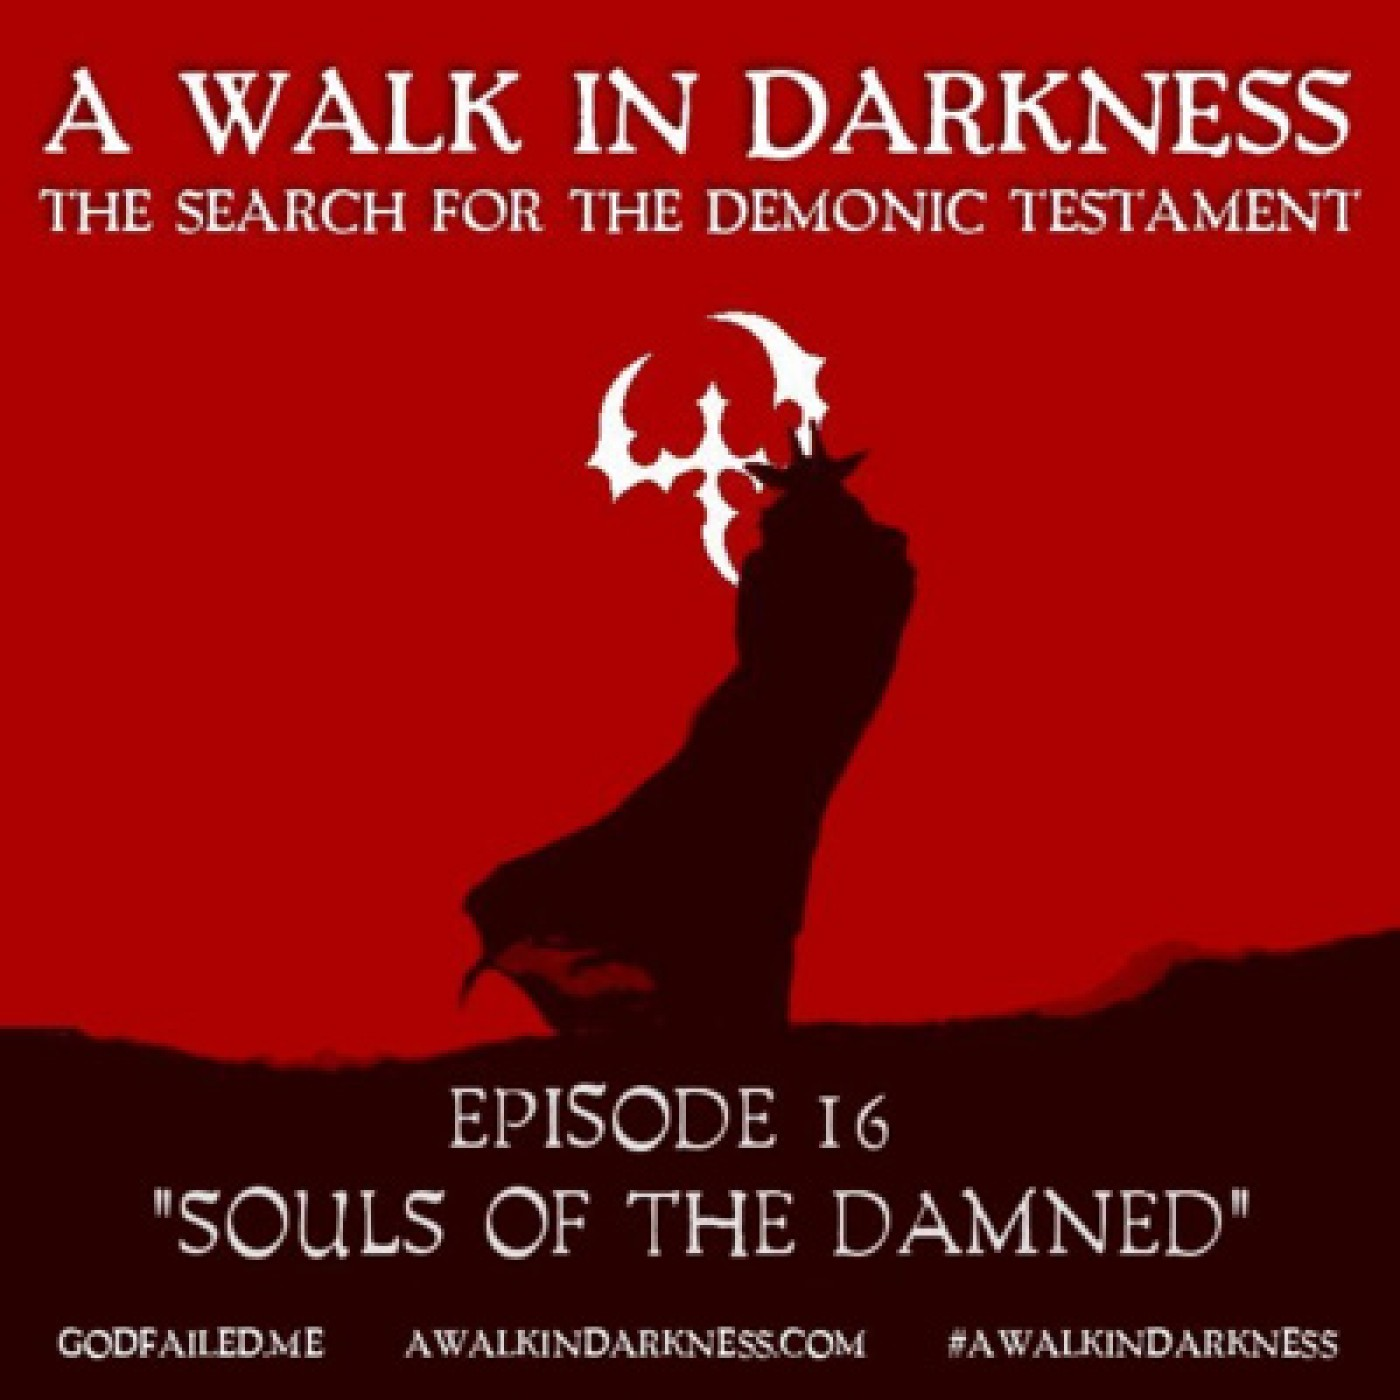 Souls Of The Damned (Episode 16)